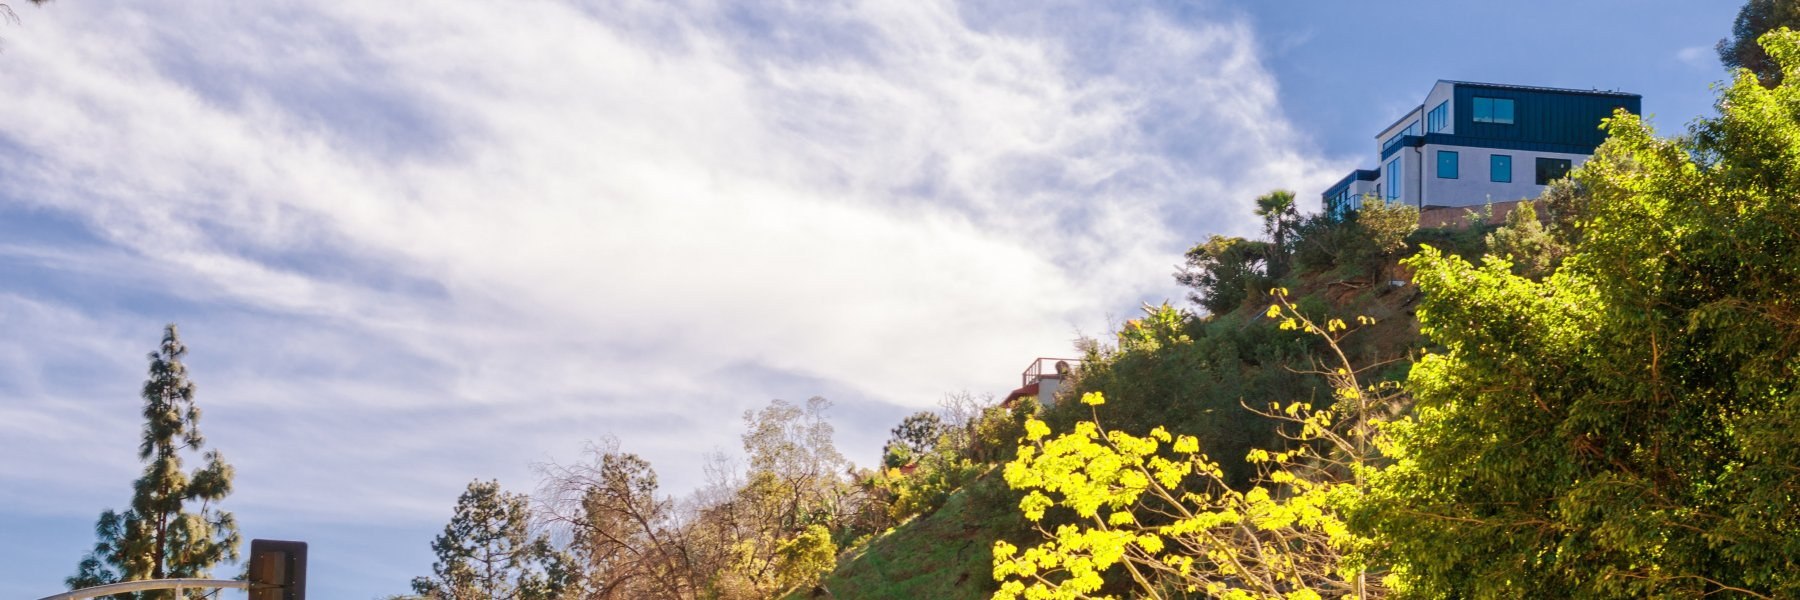 Laurel Canyon is a community of homes in Los Angeles California